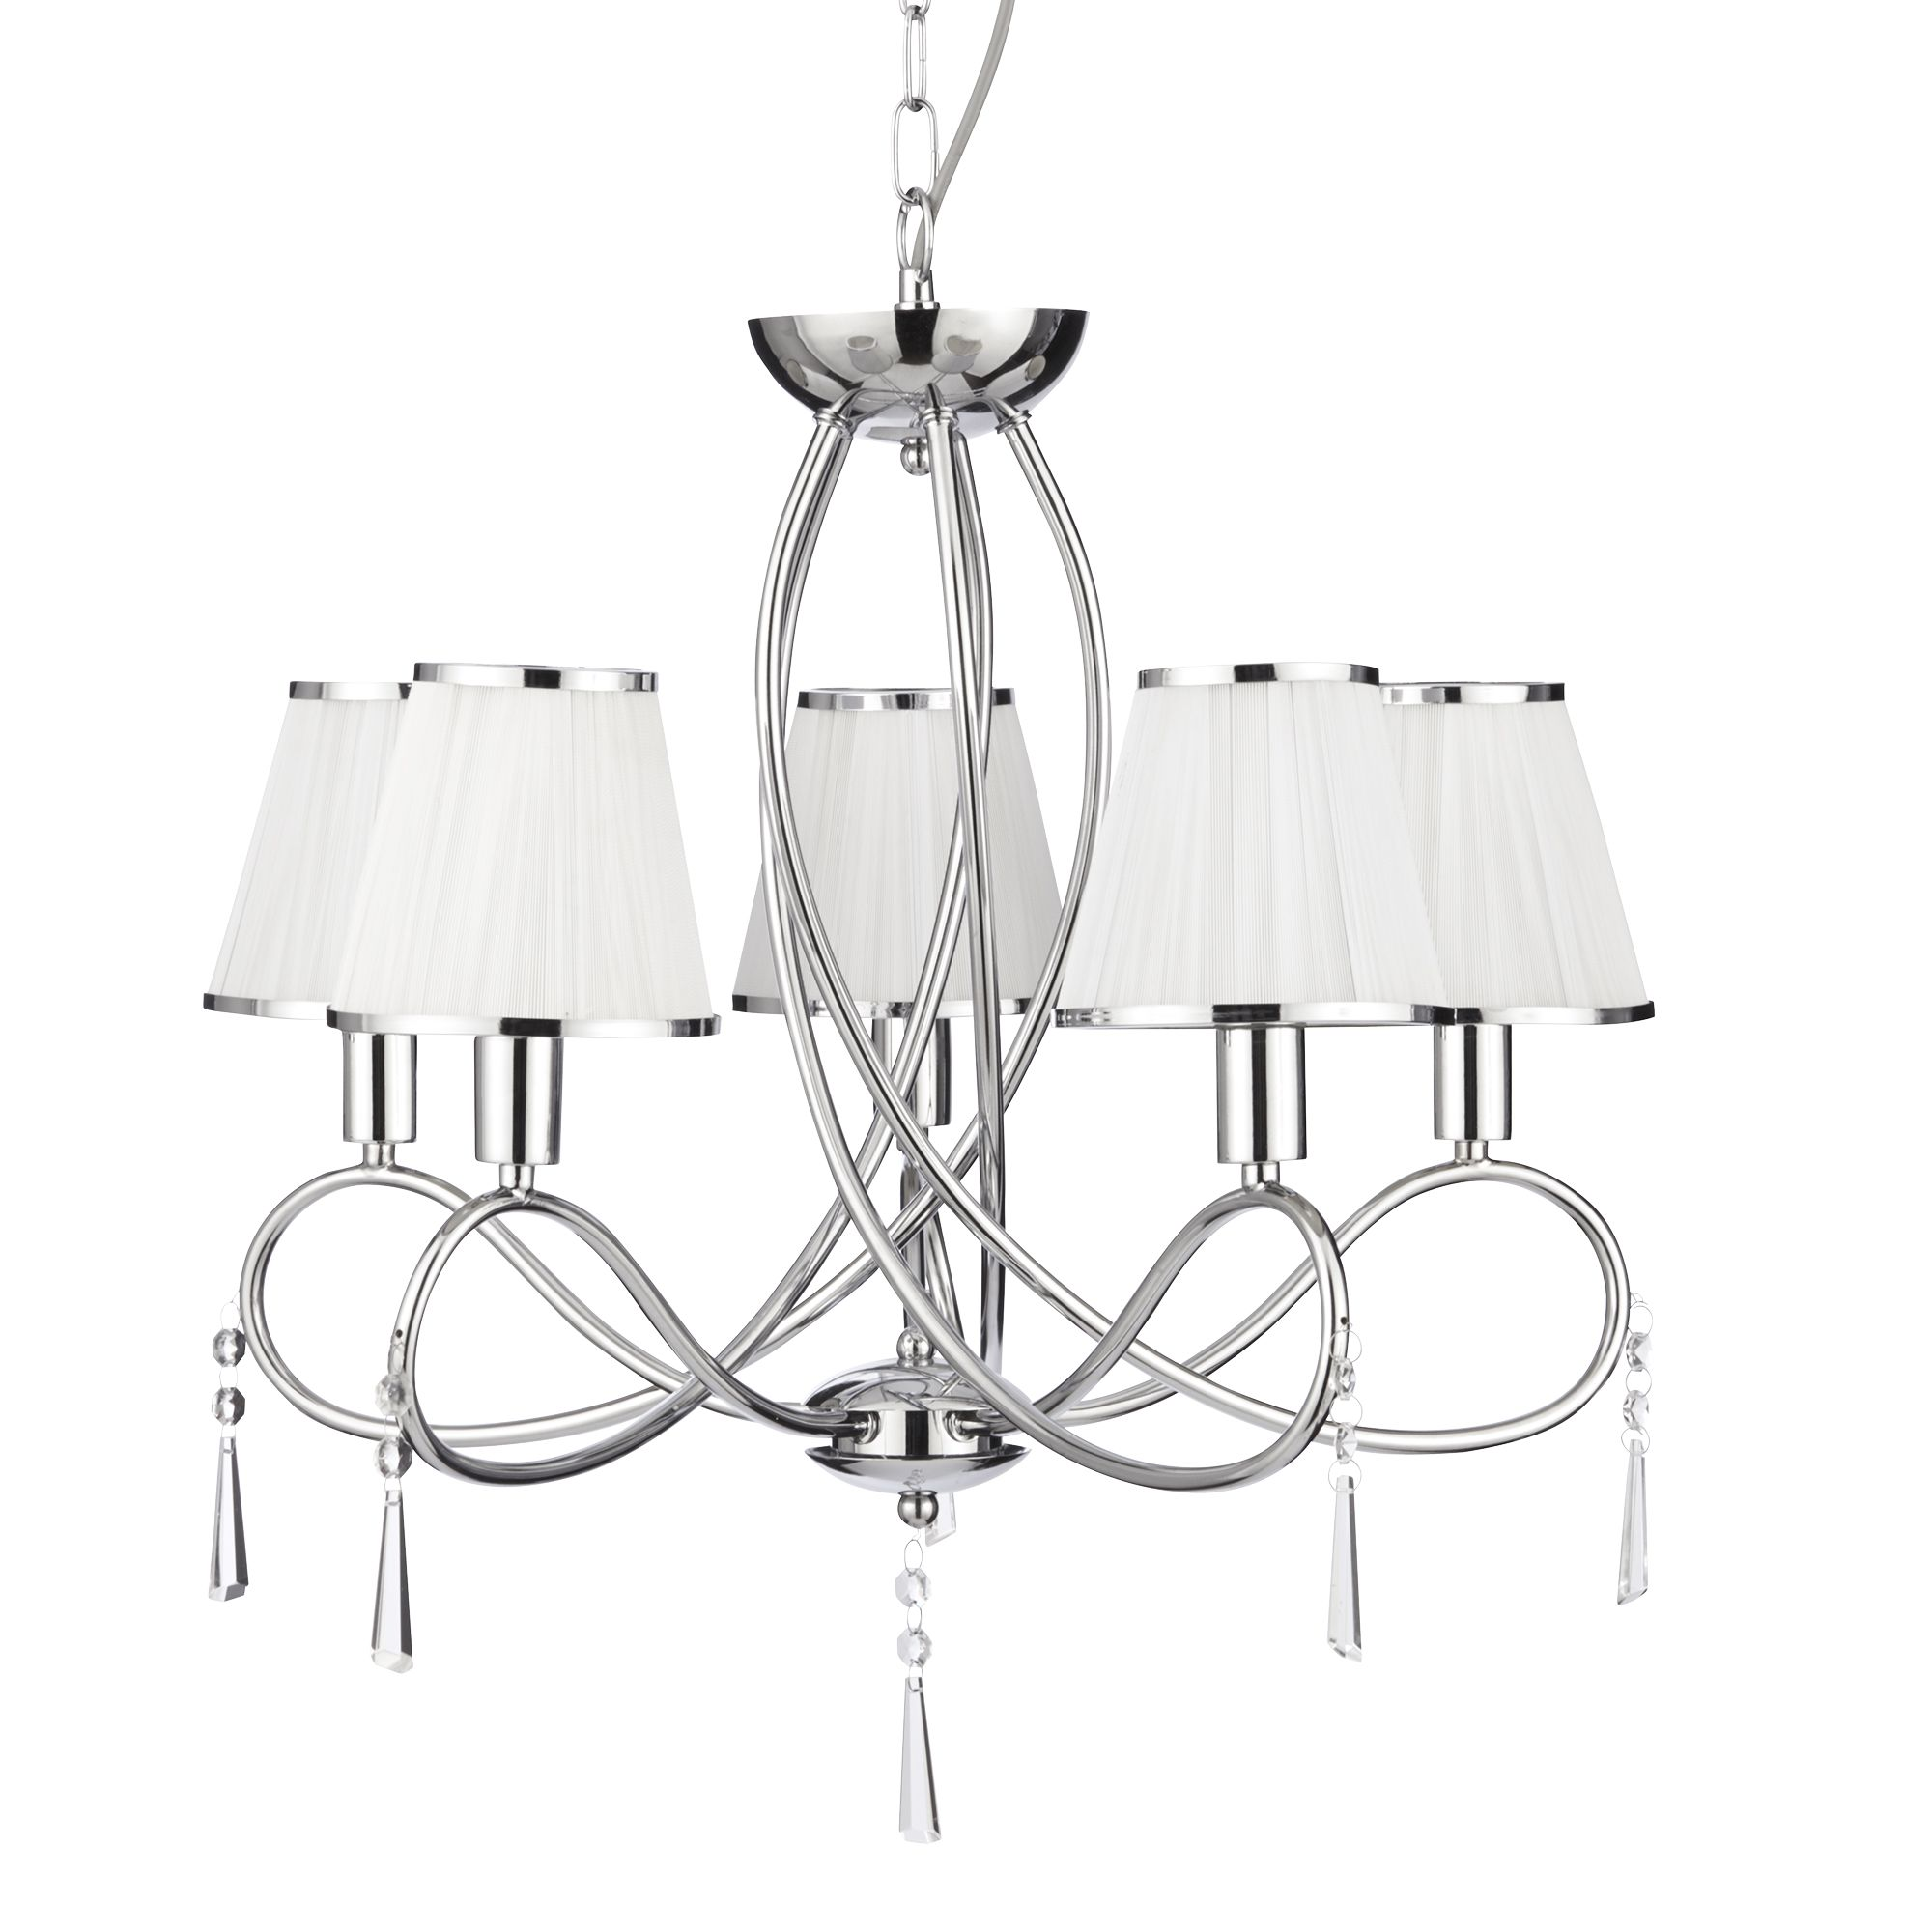 Simplicity Chrome 5 Light Fitting With Glass Drops & White String Shades